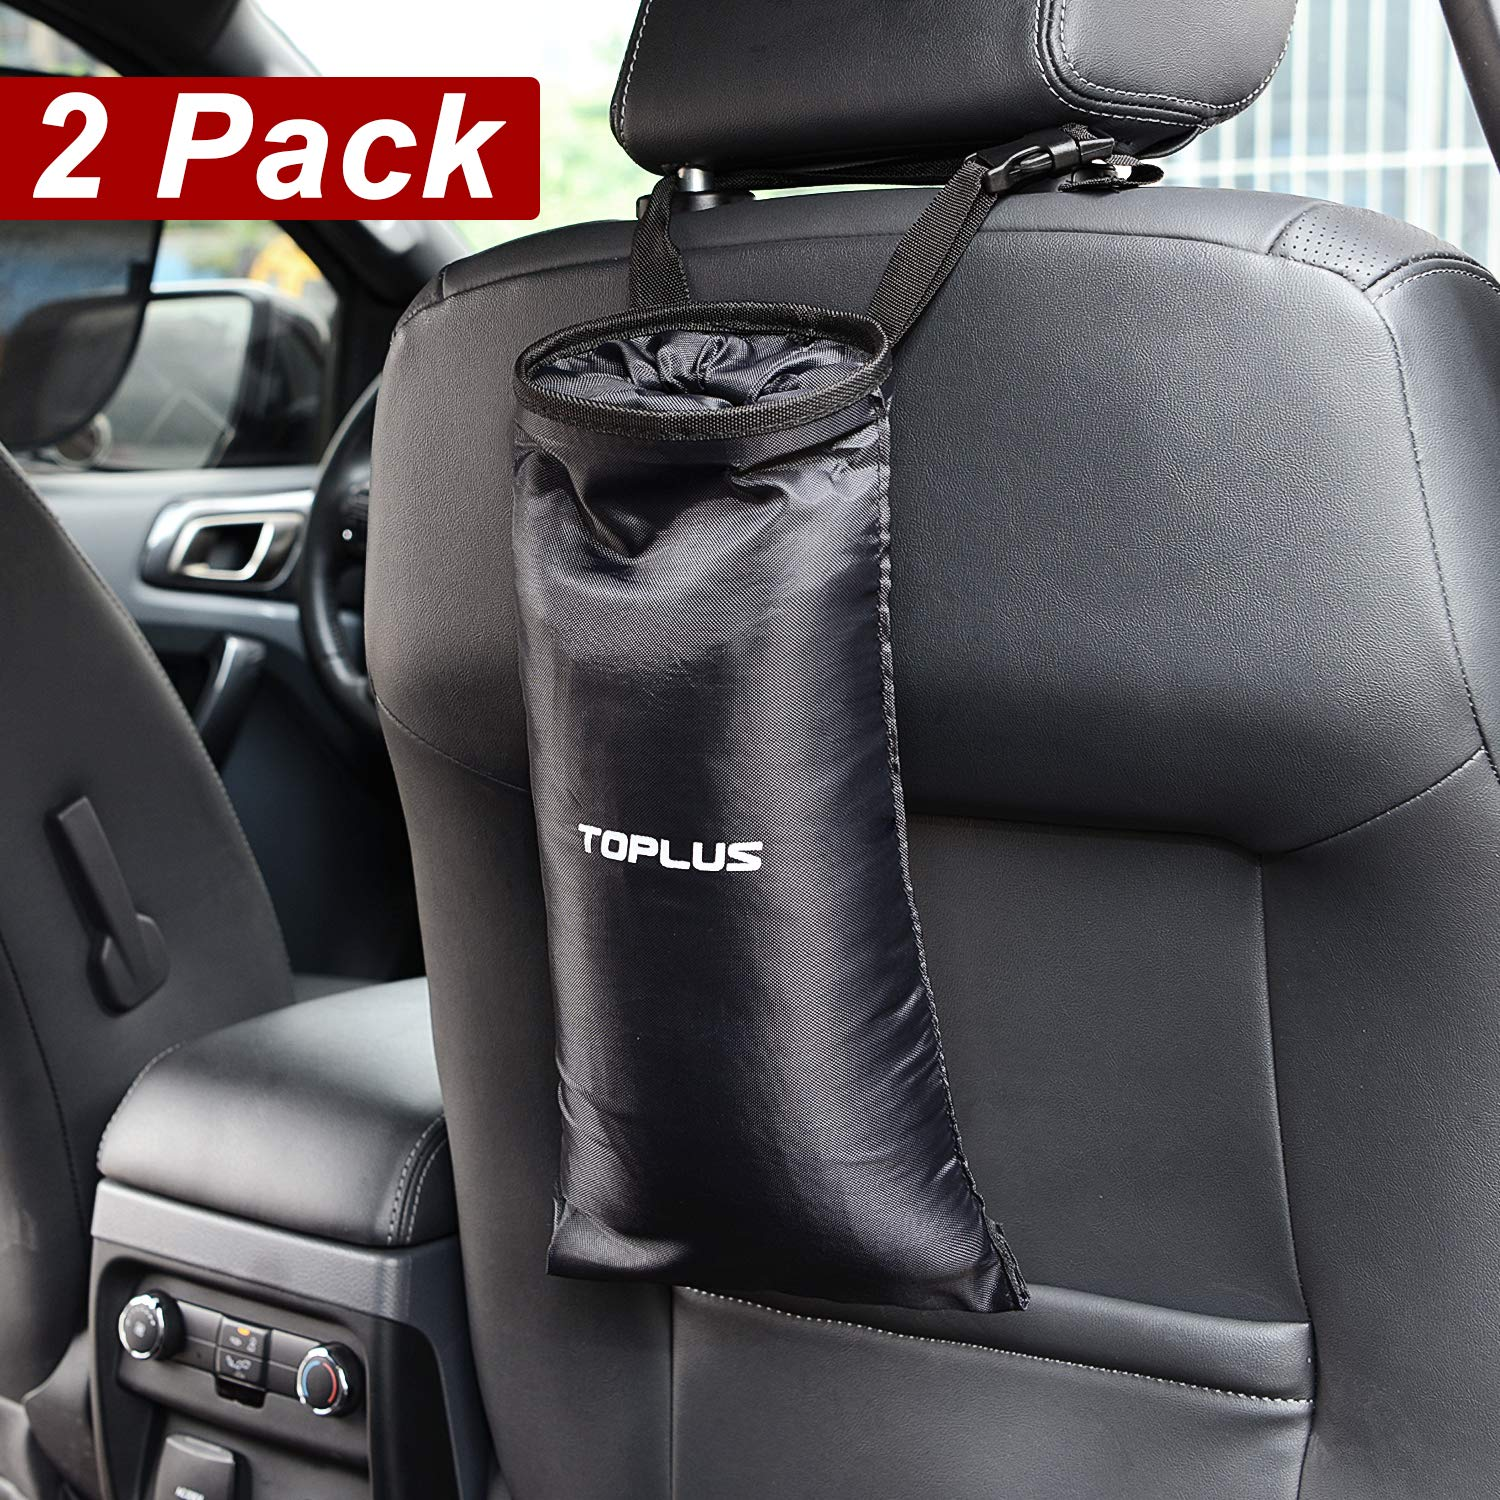 Toplus 2 PACK Car Trash Bags Home and Vehicle Use Outdoor Space Saving Car Garbage Can Container Washable Leakproof Eco-friendly Seatback Truck Hanging bags for Travelling